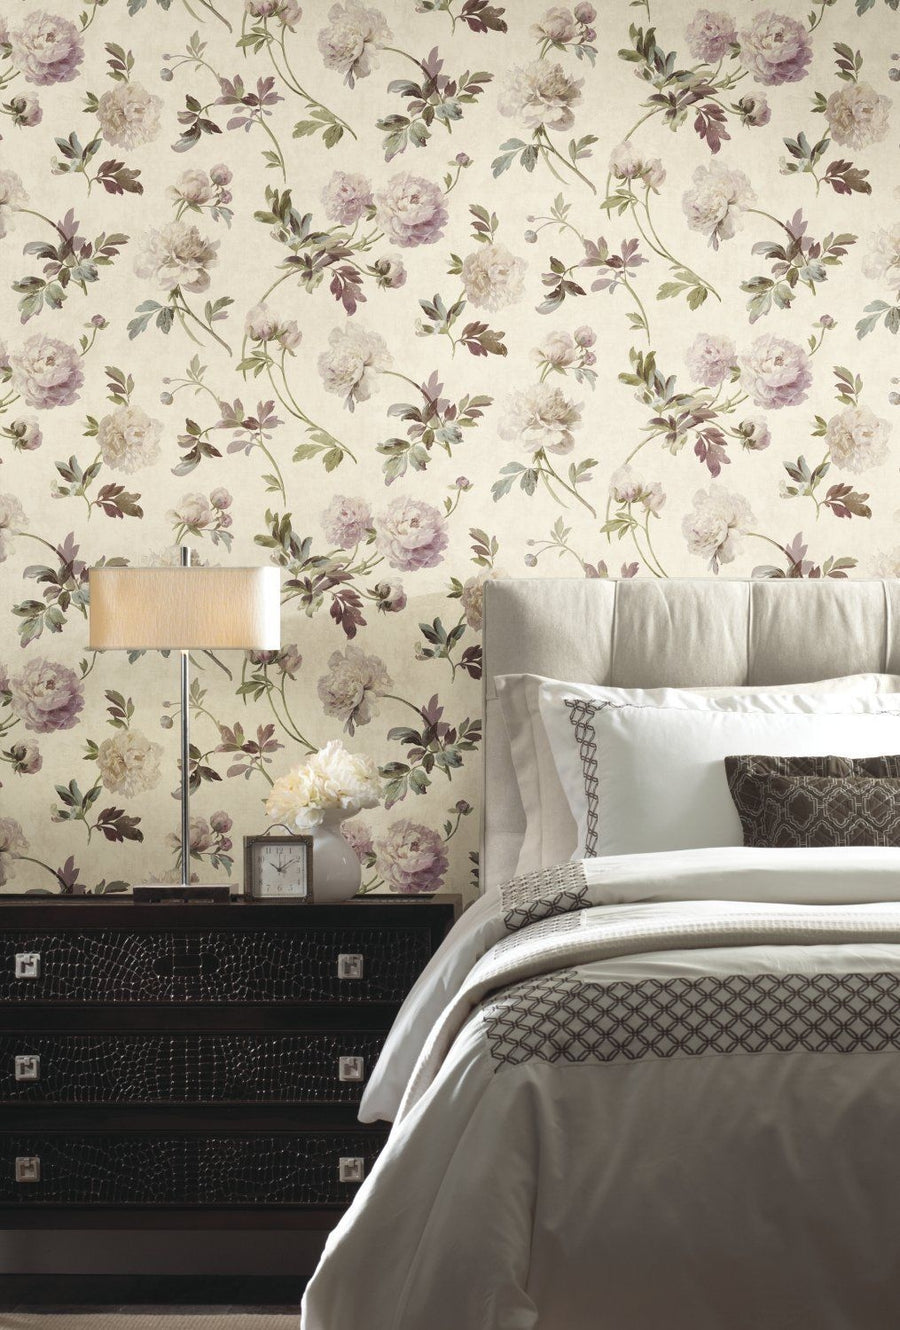 Whitworth Peony on Faux Beige Linen Wallpaper - all4wallswall-paper